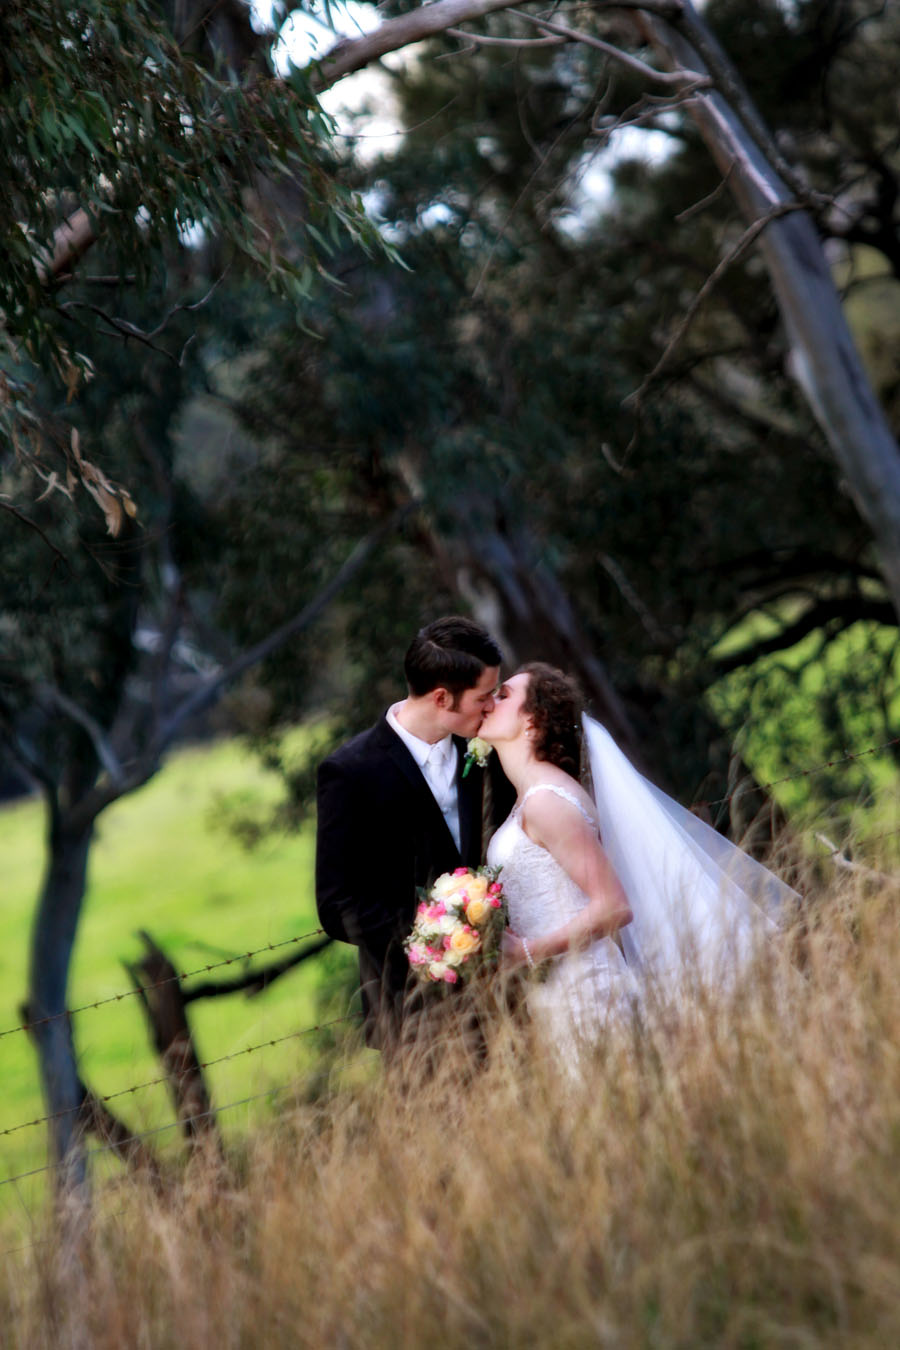 wedding gallery 2016 the best of the best expect this quality with your wedding, DMT Photography Coffs Harbour NSW Australia